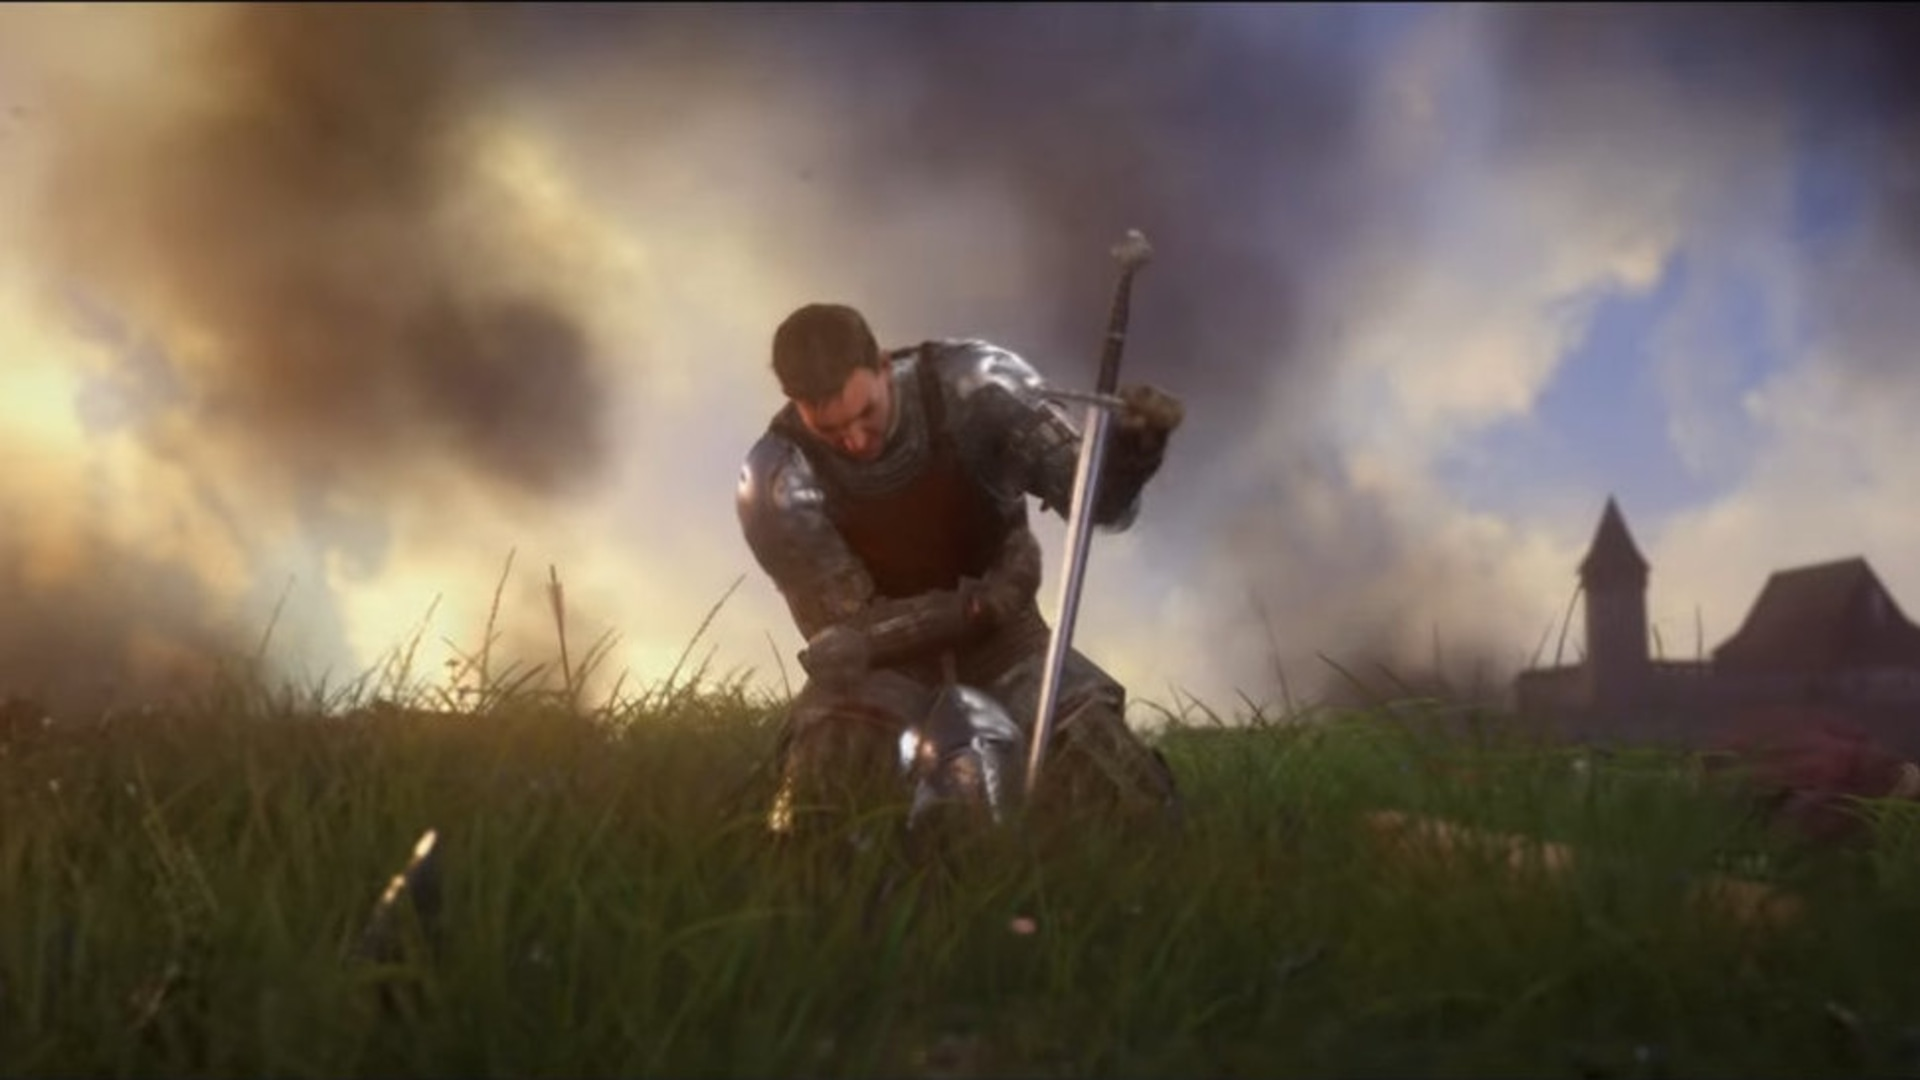 Kingdom Come Deliverance is coming to Nintendo Switch